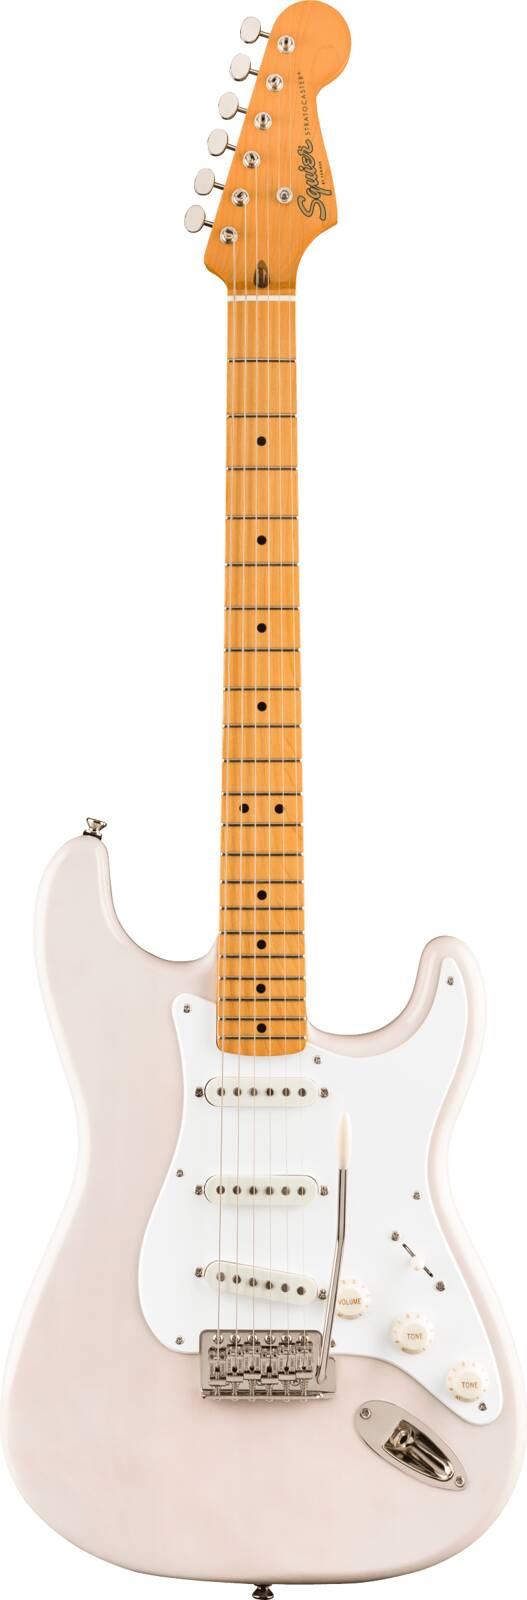 Squier Classic Vibe '50s Stratocaster Maple Fingerboard White Blonde : photo 1